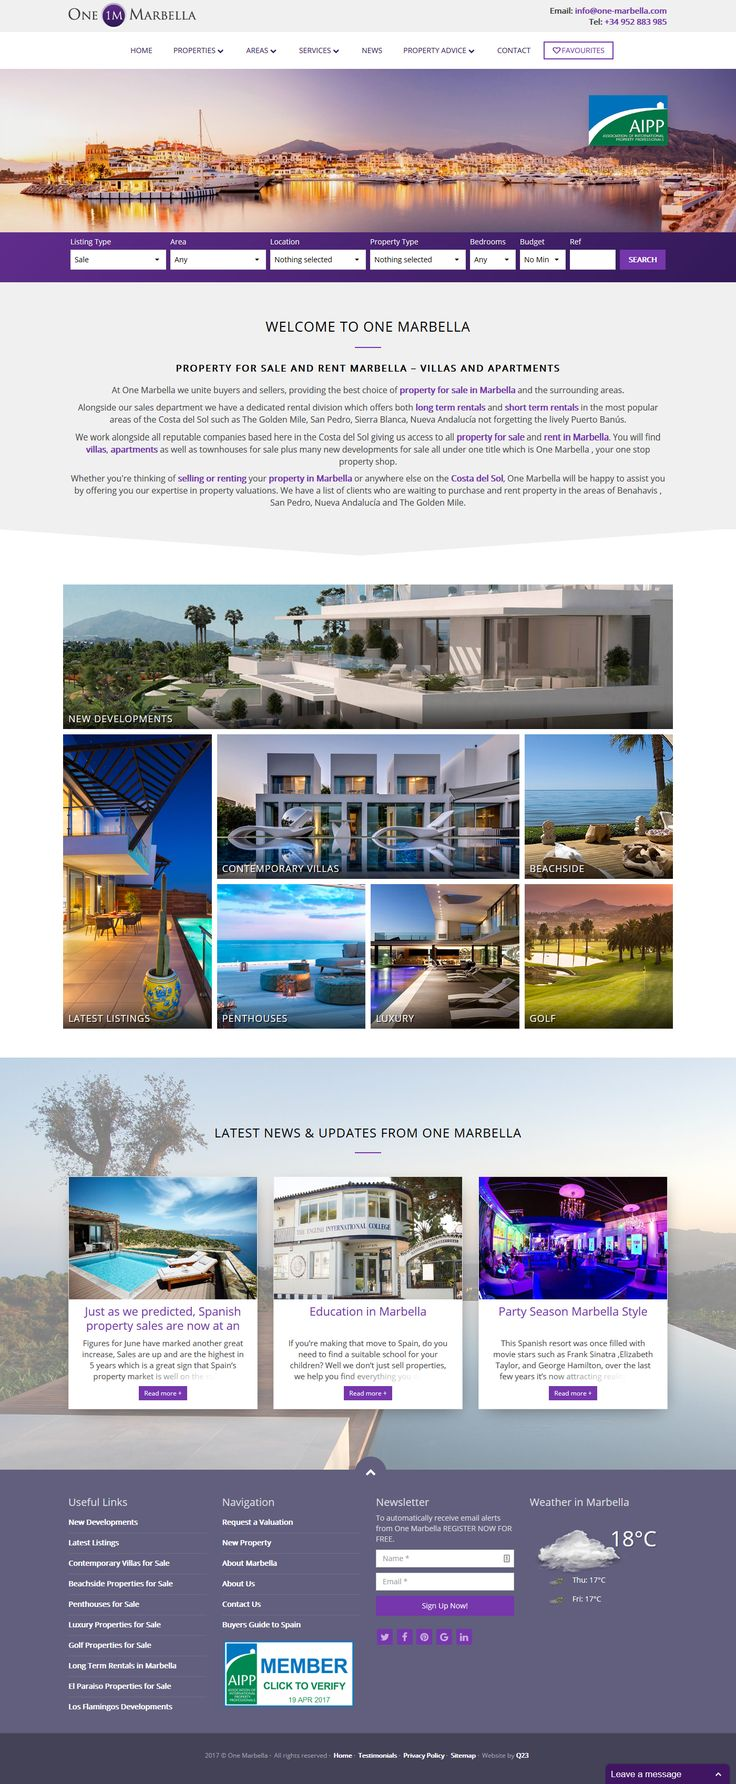 Whether you're thinking of selling or renting your property in Marbella or anywhere else on the Costa del Sol, One Marbella will be happy to assist you by offering you our expertise in property valuations. #Marbella #RealEstate #qresXML #ResalesOnline #Infocasa